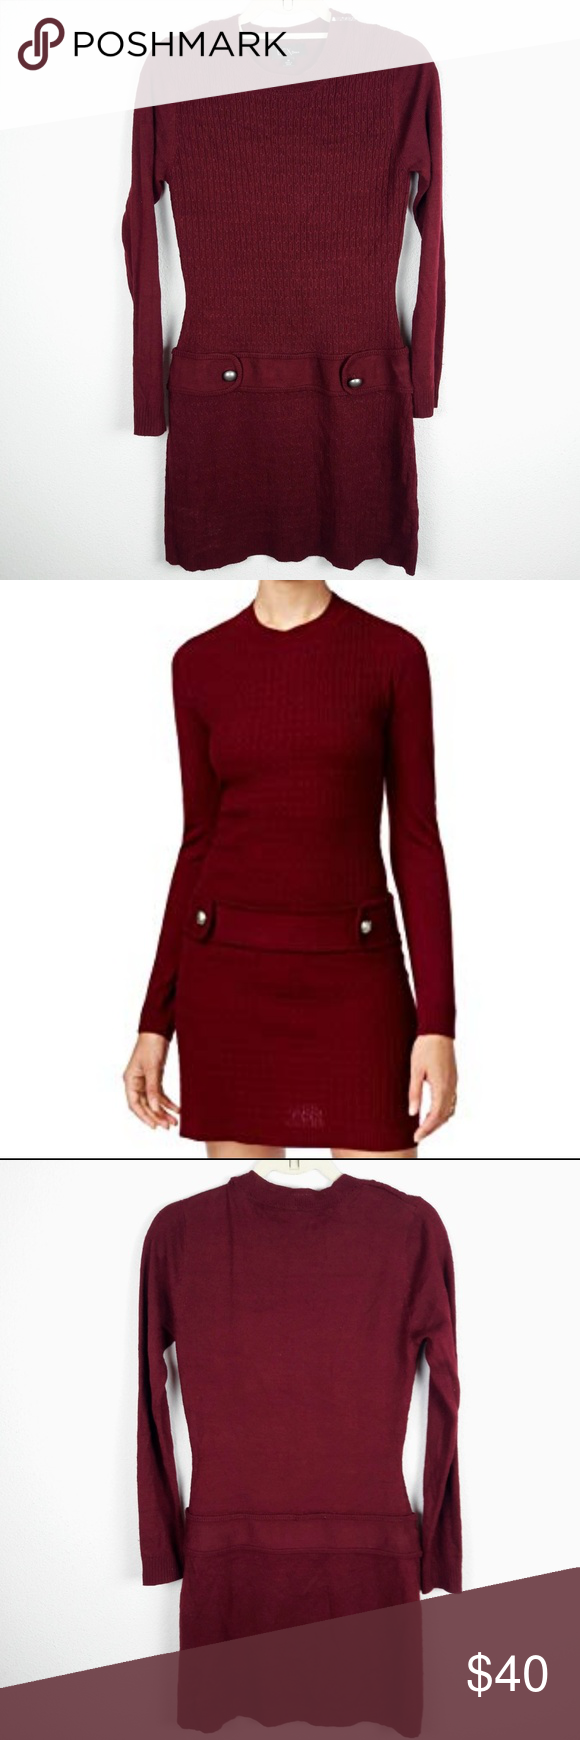 88e939916d4 BCX Maroon Long Sleeve Sweater Dress New with tags Fabric has stretch  Color  Maroon SIZE